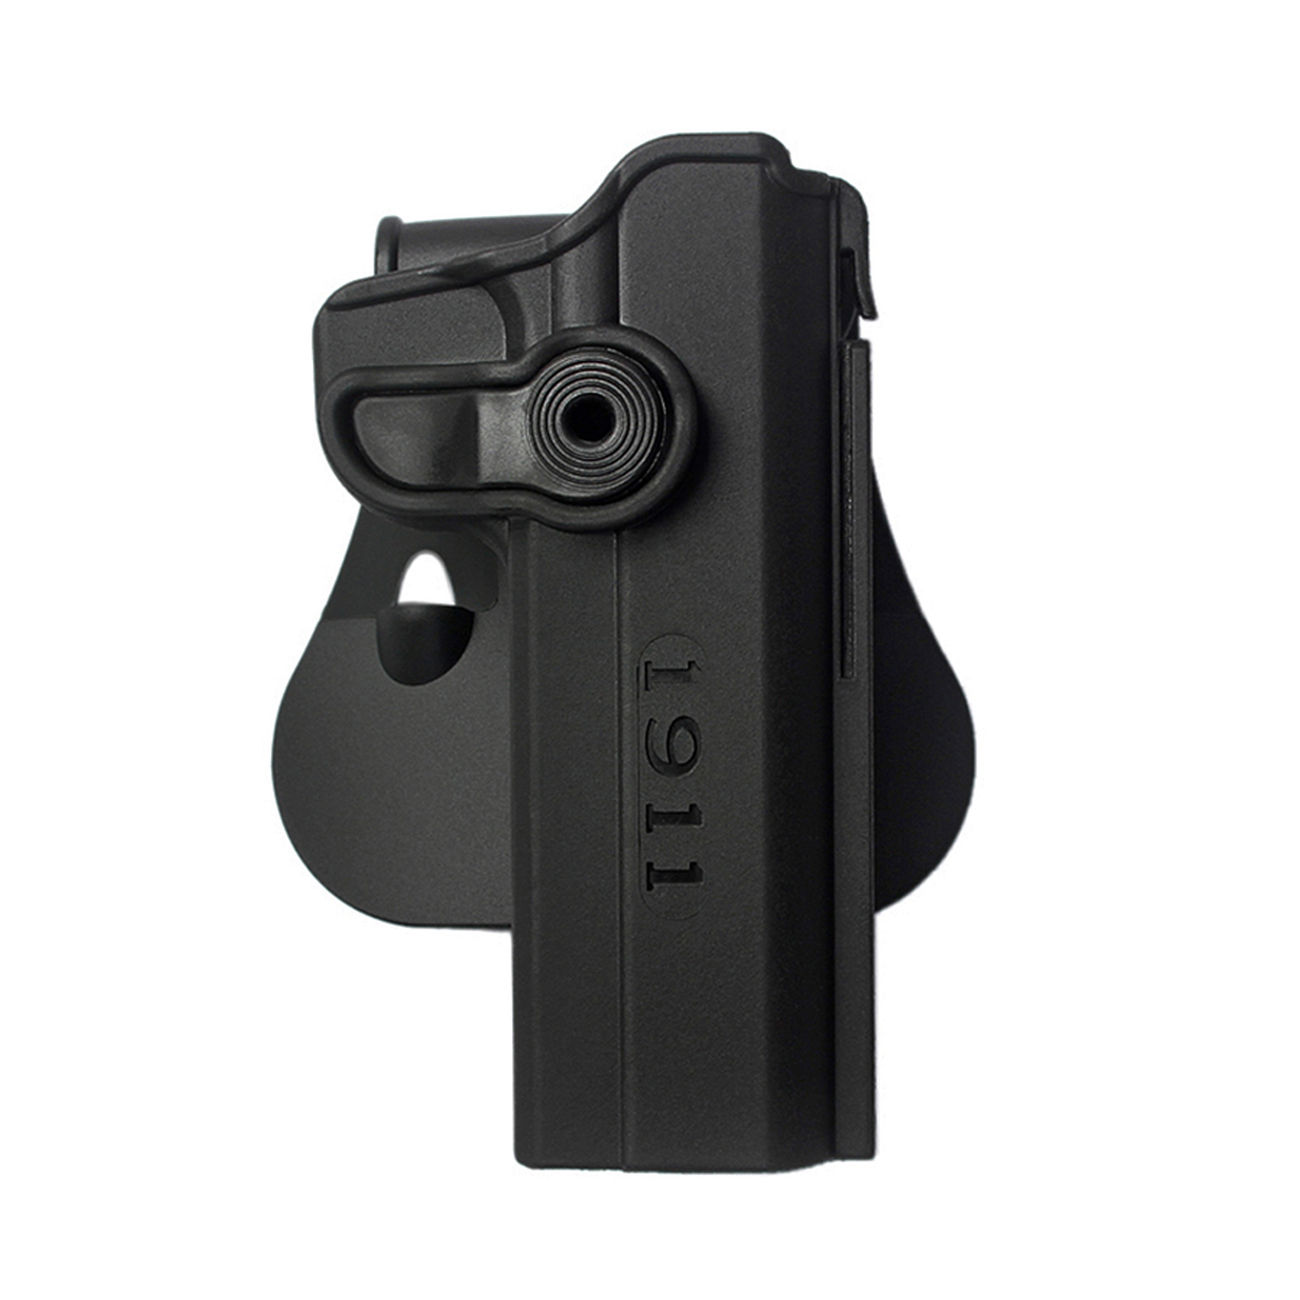 IMI Defense Level 2 Holster Kunststoff Paddle für 1911 Modelle schwarz 0